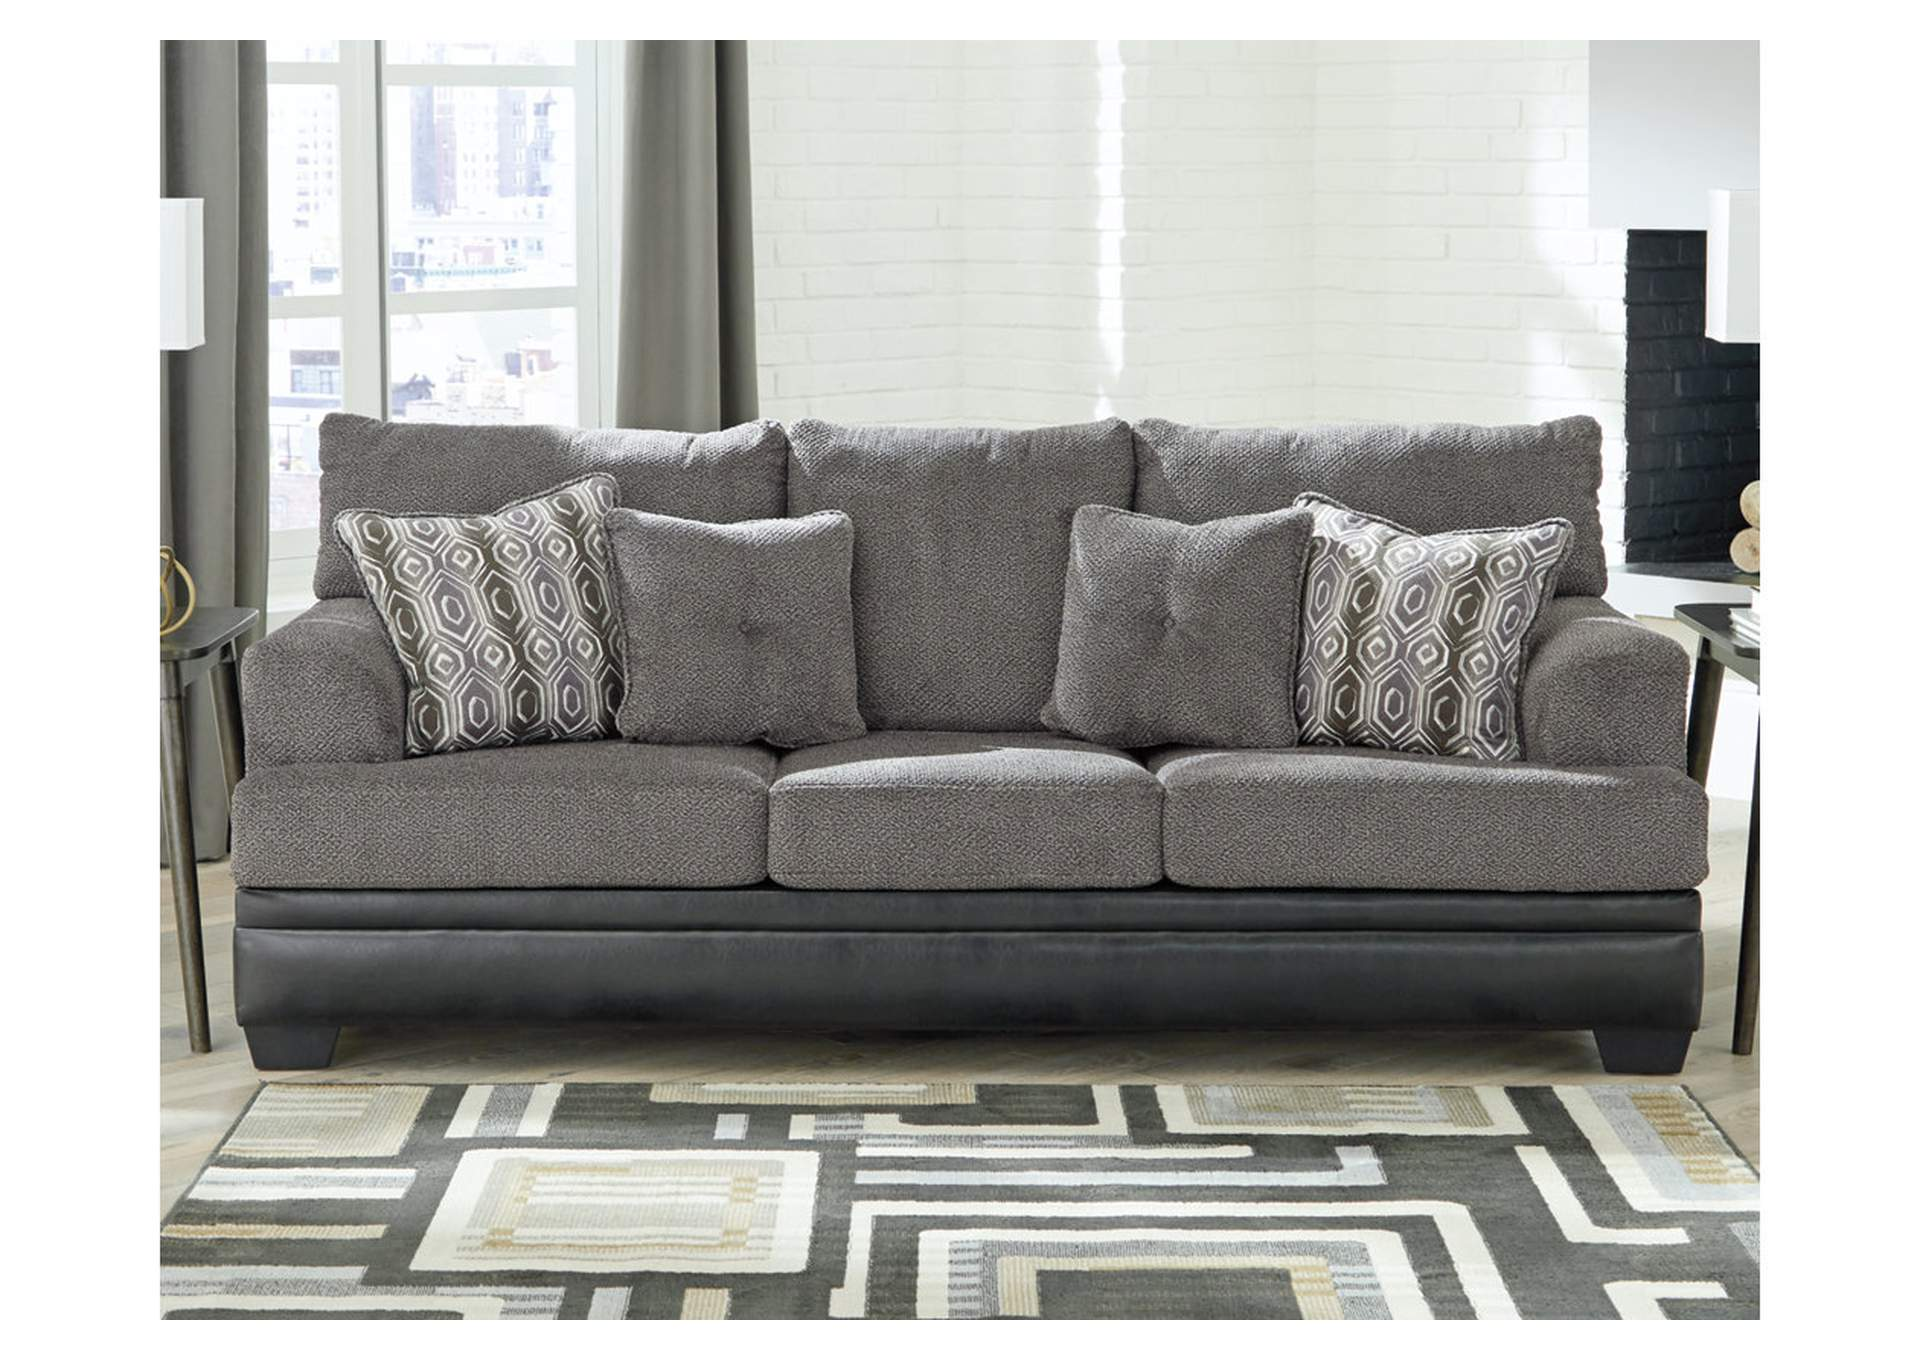 Millingar Smoke Sofa,Signature Design By Ashley